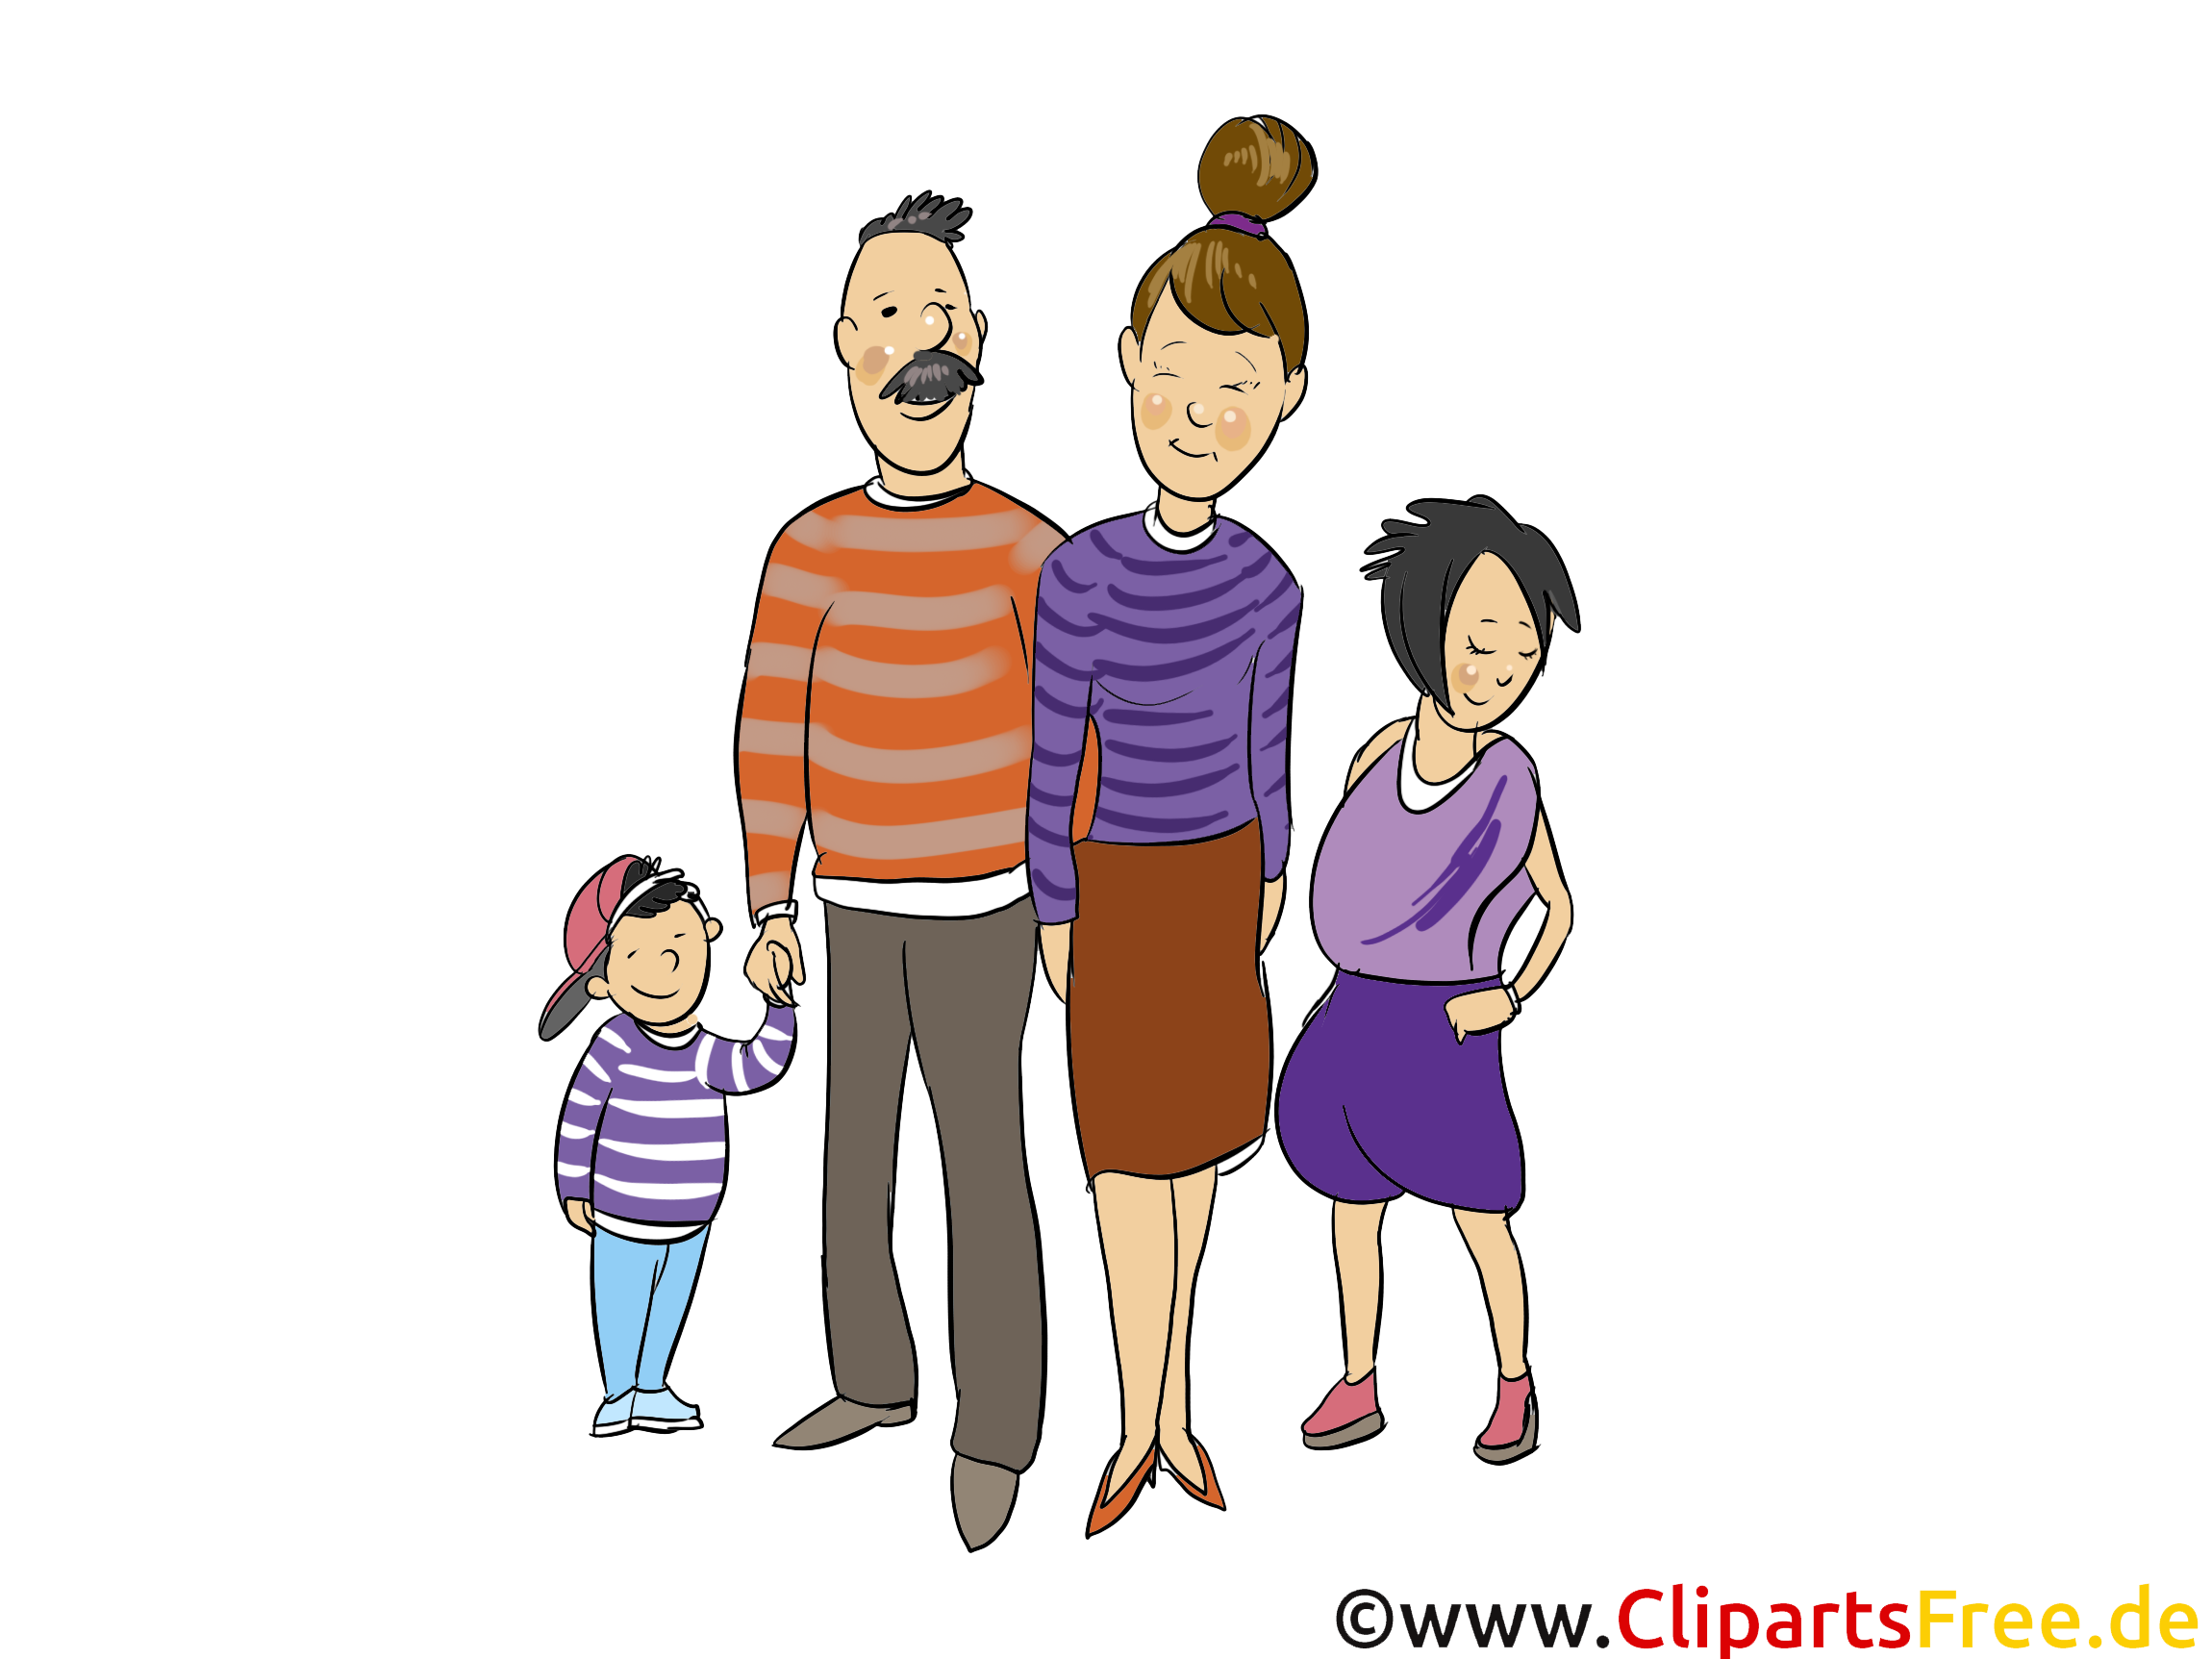 Vater und mutter clipart svg royalty free download Vater und mutter clipart - ClipartFest svg royalty free download